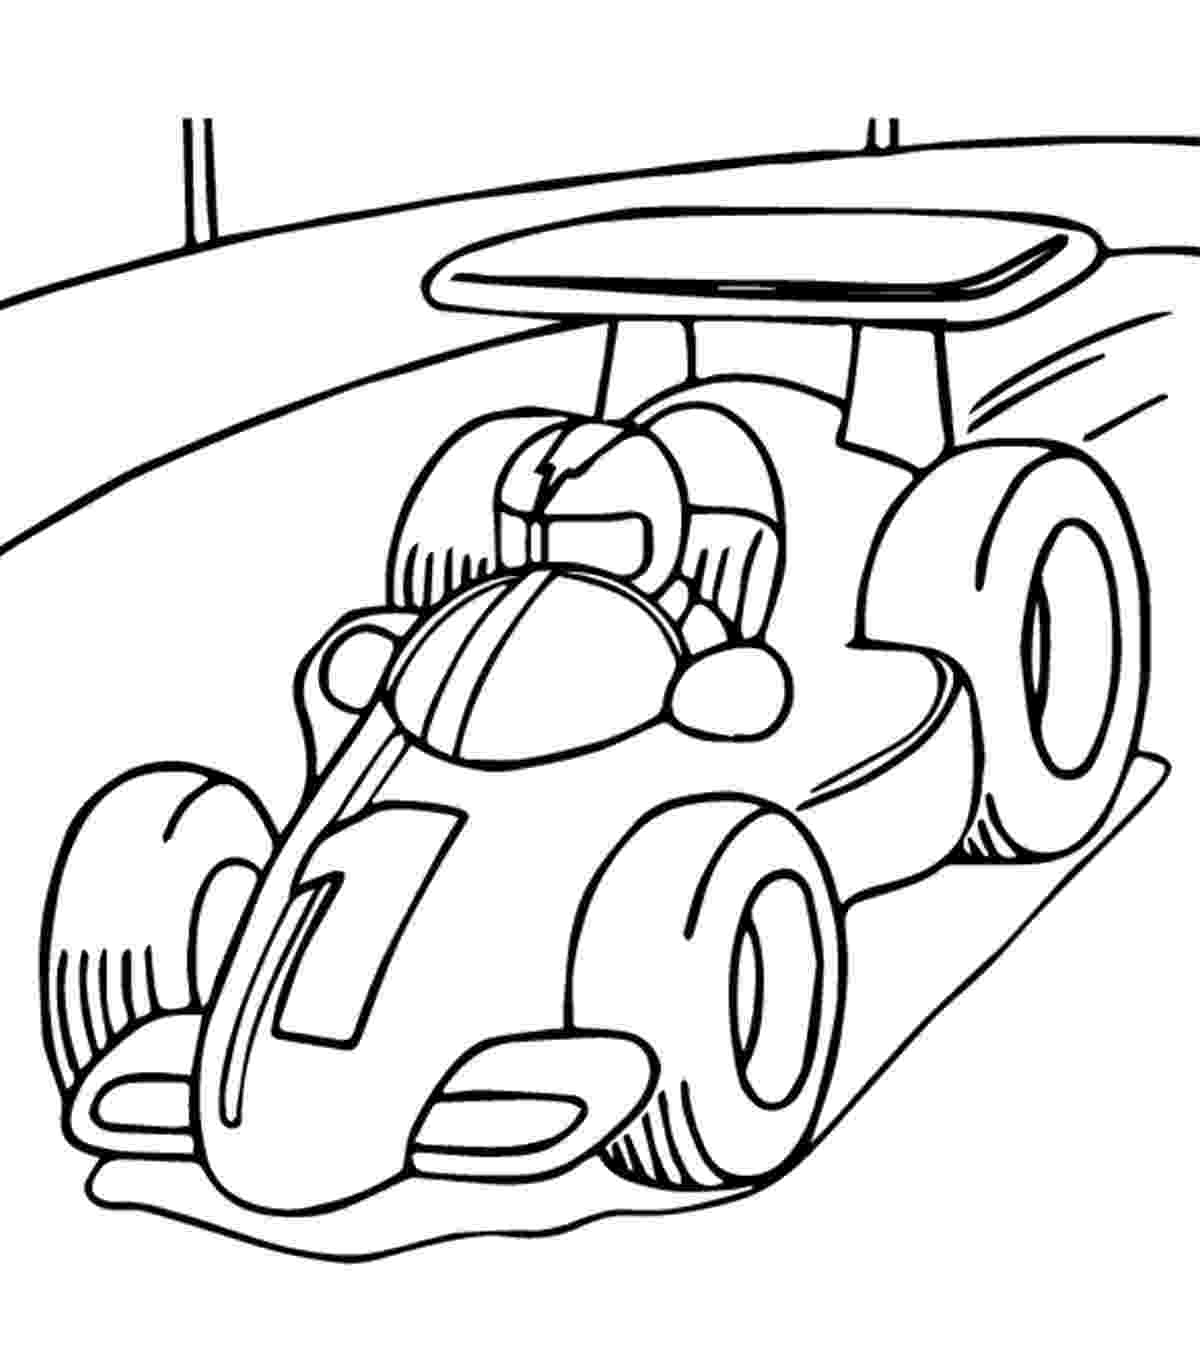 racecar coloring page race car coloring pages 360coloringpages page racecar coloring 1 1